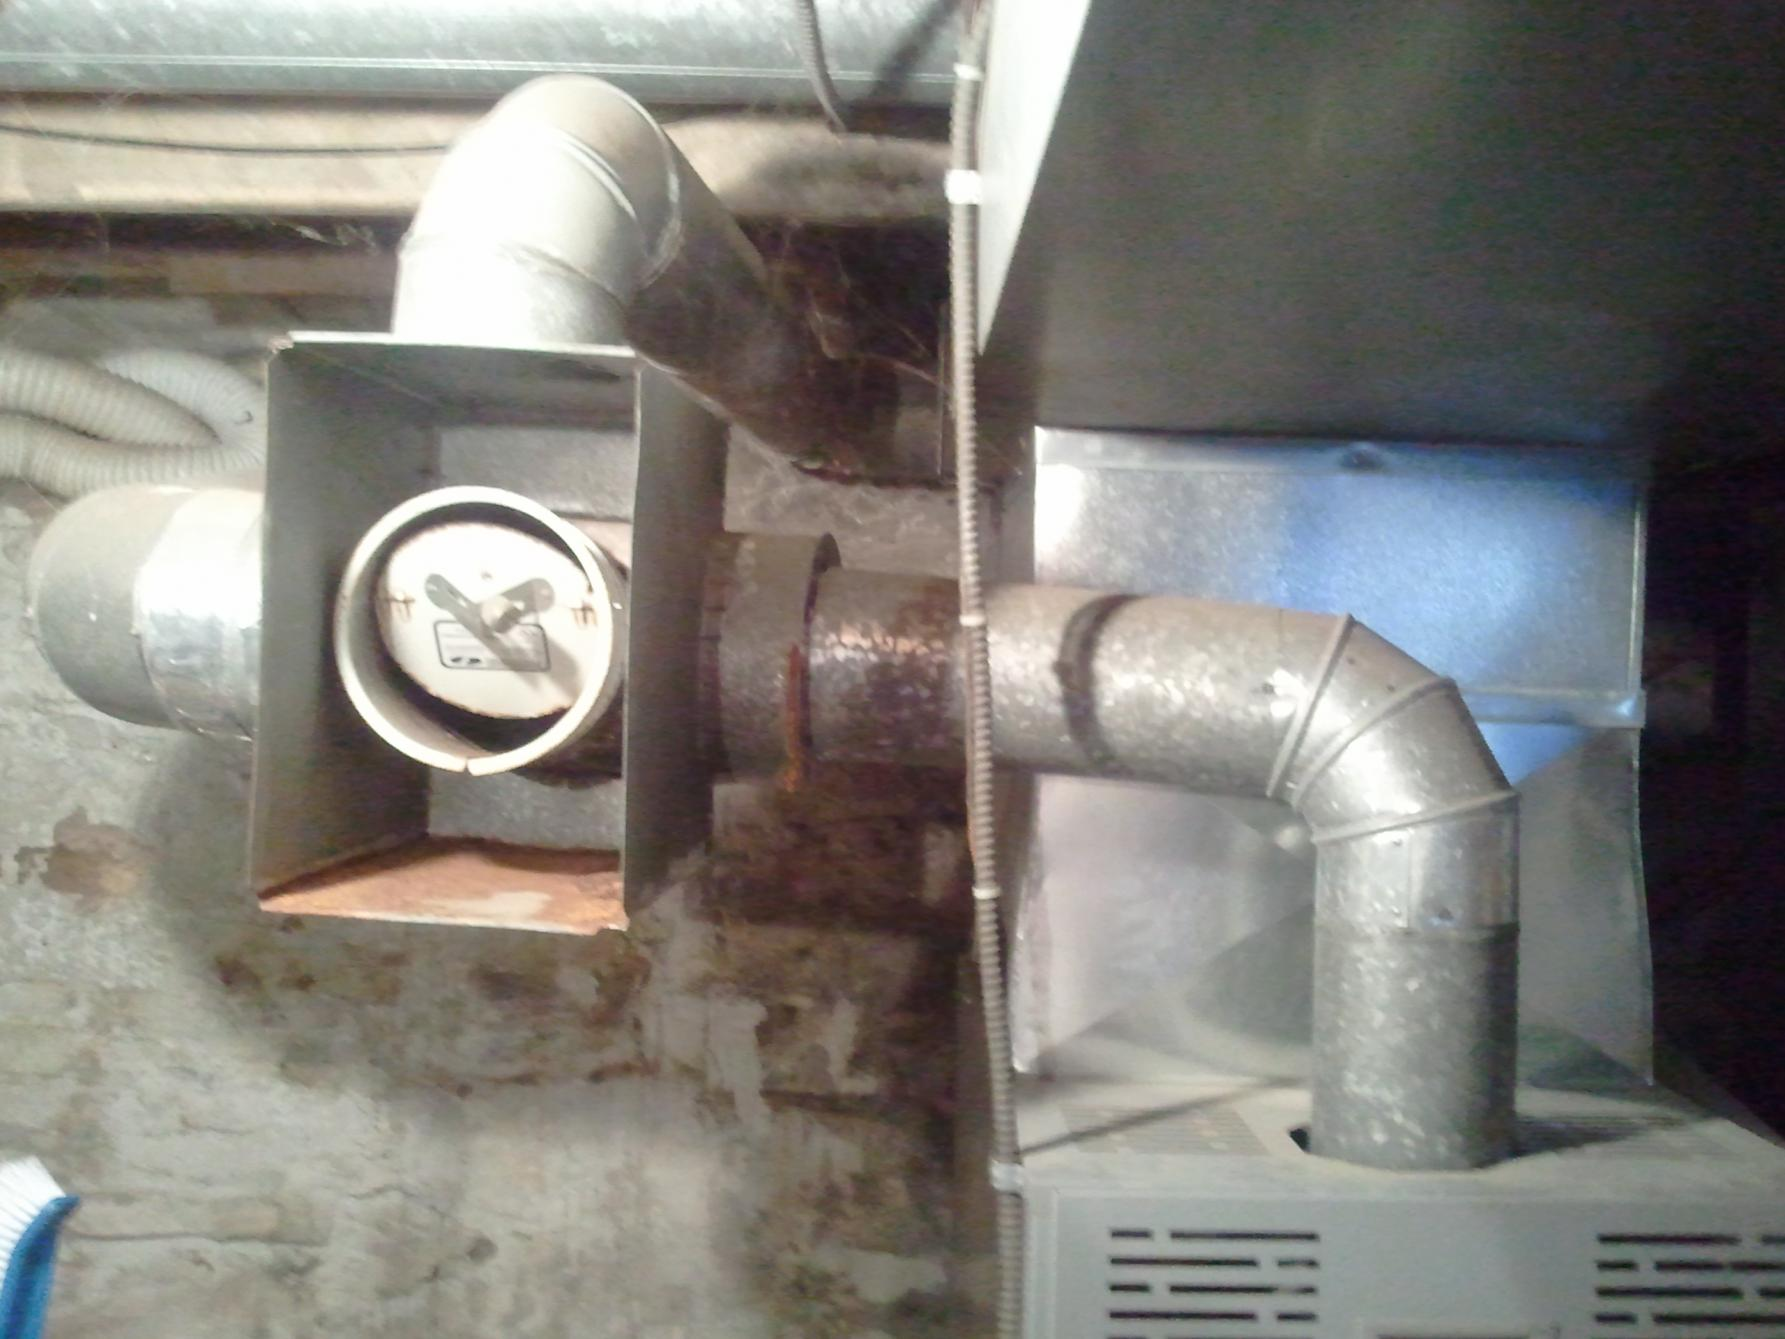 Fresh air duct work for oil furnace-2010-12-07-08.39.10.jpg